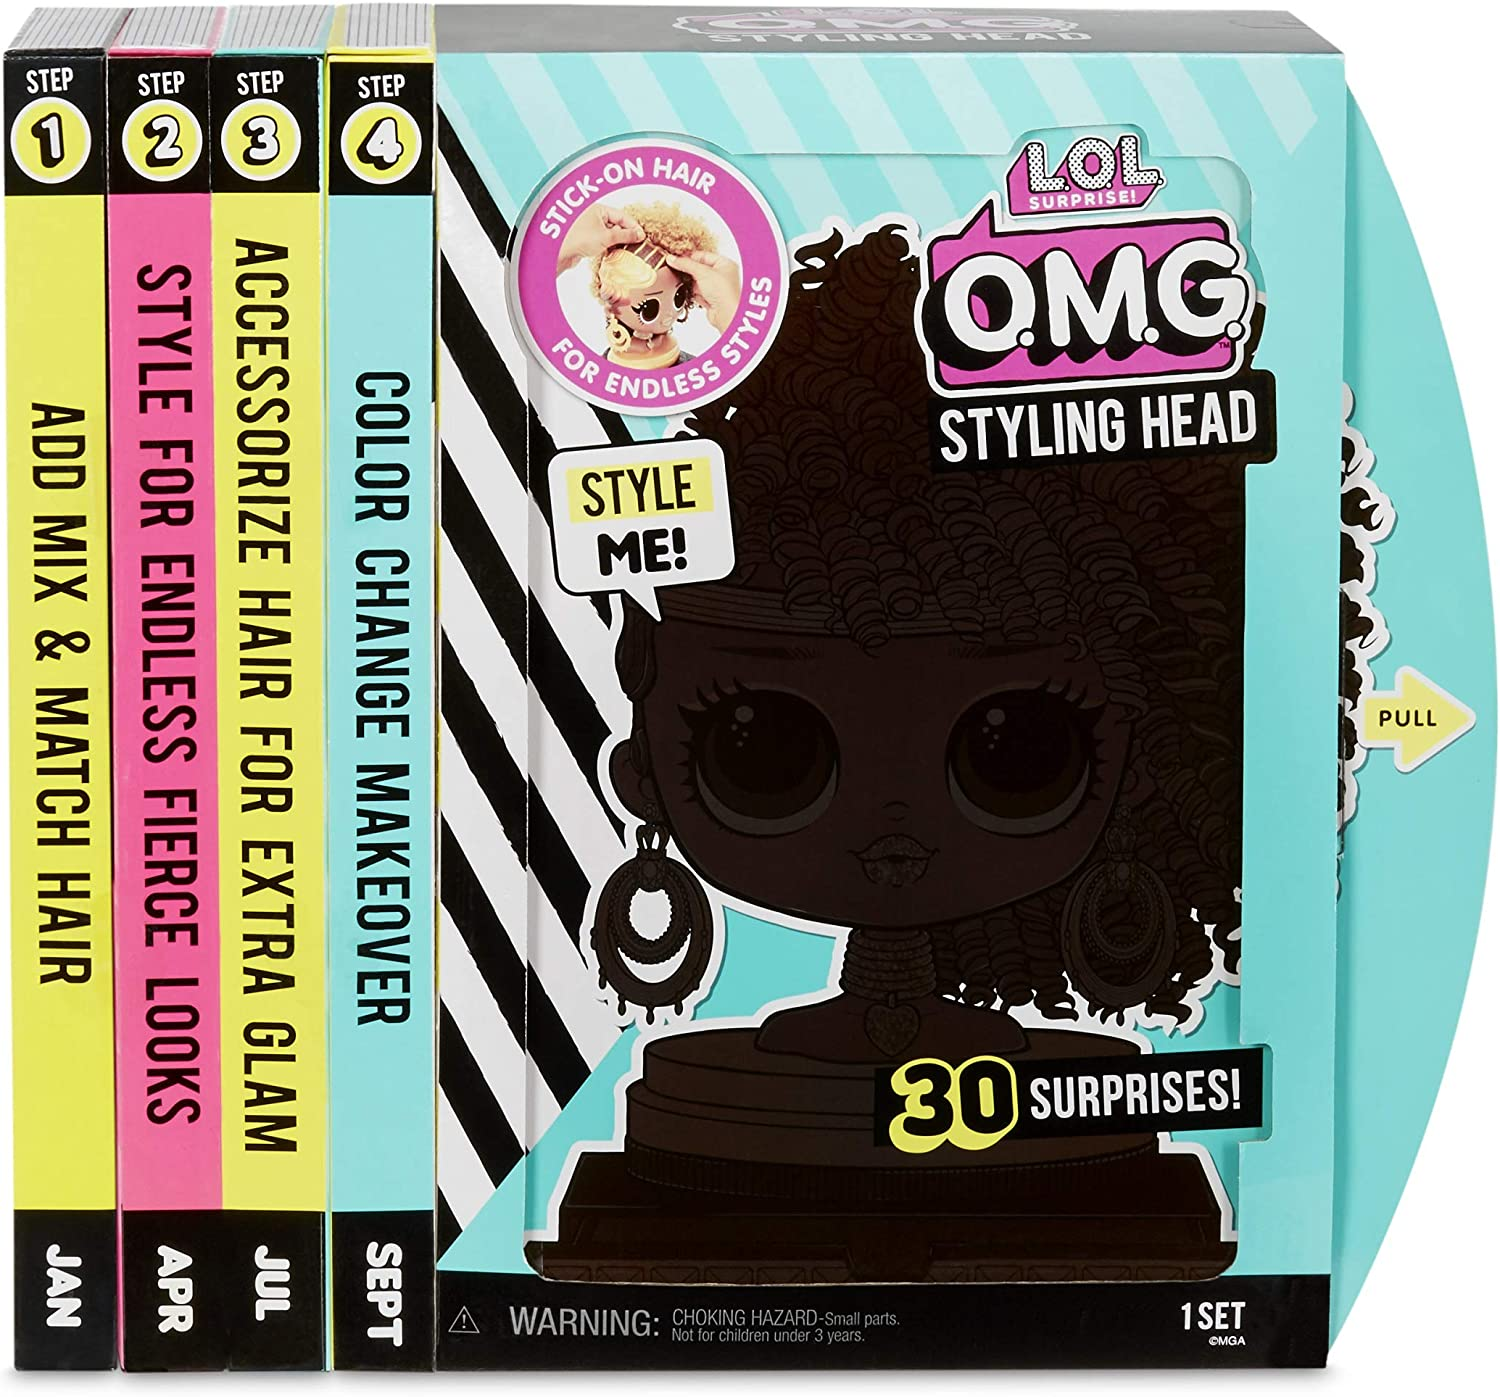 566229E7C Styling Head with for Endless L.O.L /Überraschung O.M.G Stylingkopf Royal Bee mit Stick-On Hair f/ür endlose Styles Surprise L.O.L Multi